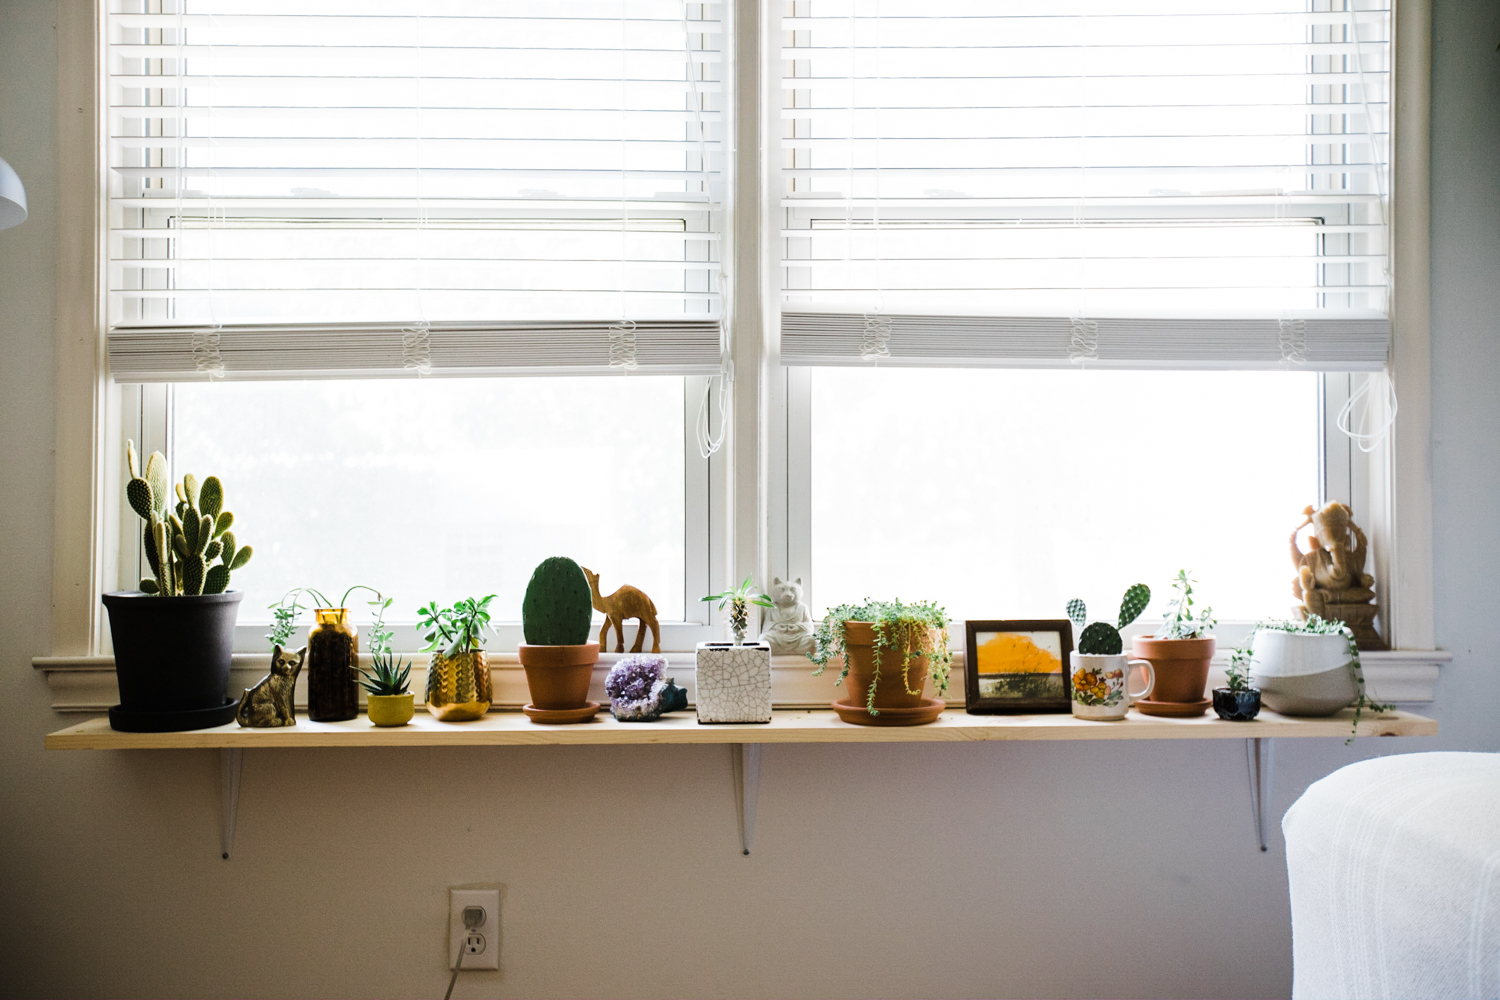 Holly's guest room    plant shelf is filled with plants and other colorful chotskies.